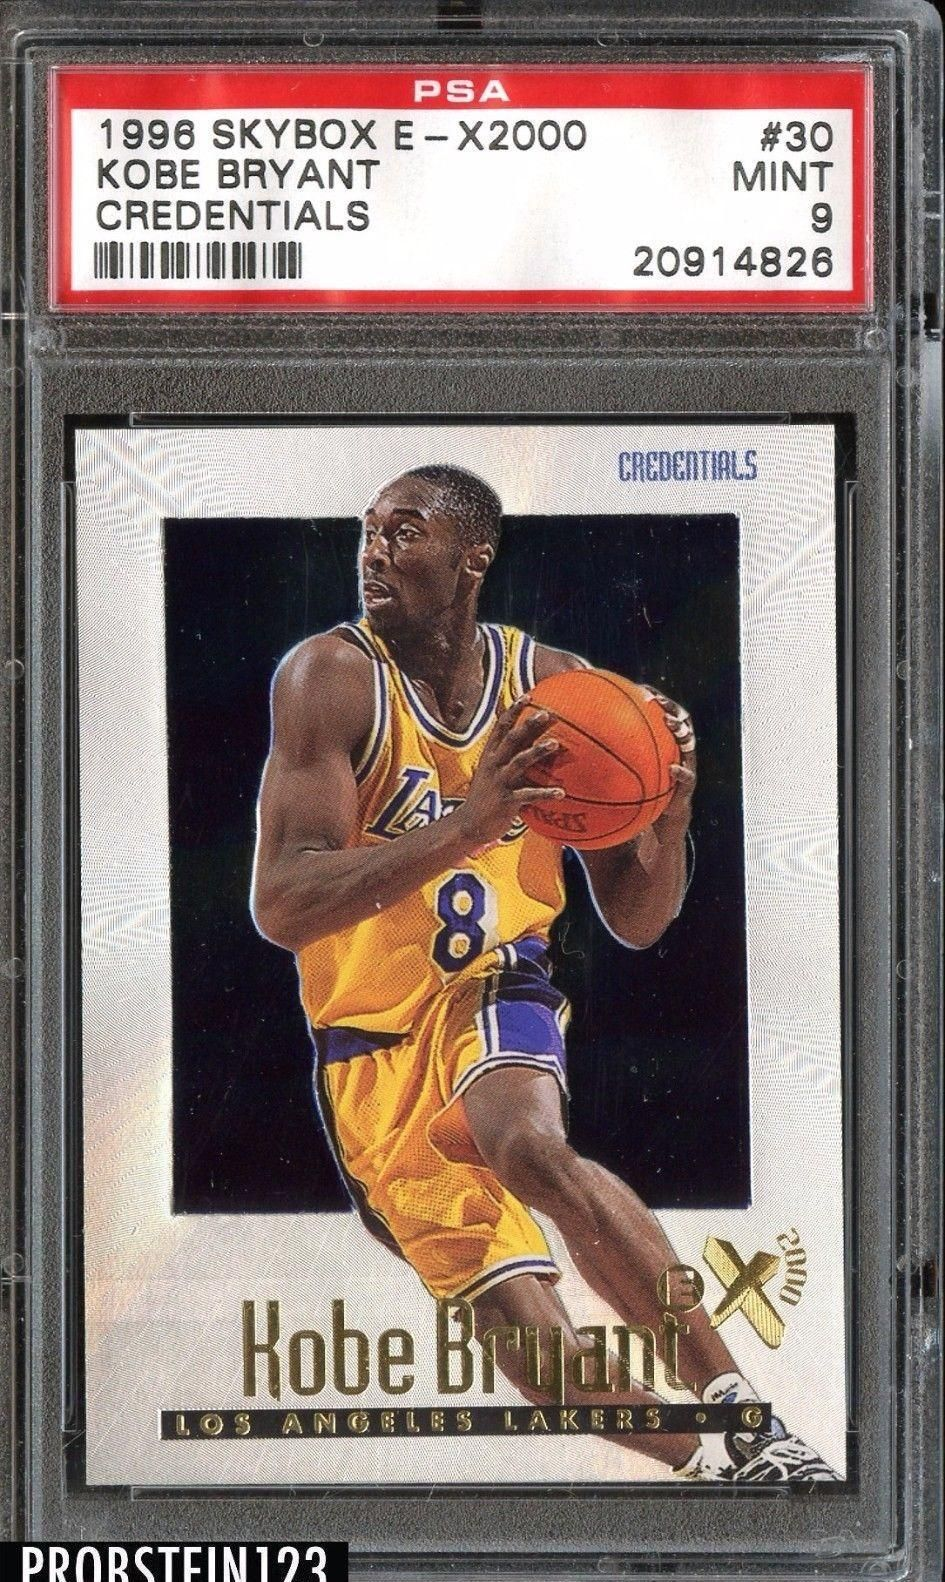 32a24a5b328c  mothersday  AdoreWe  SportsMemorabilia.com Teamware   Logo -  SportsMemorabilia.com 1996-97 Skybox E-X2000 Credentials  30 Kobe Bryant  Lakers RC Rookie  499 ...